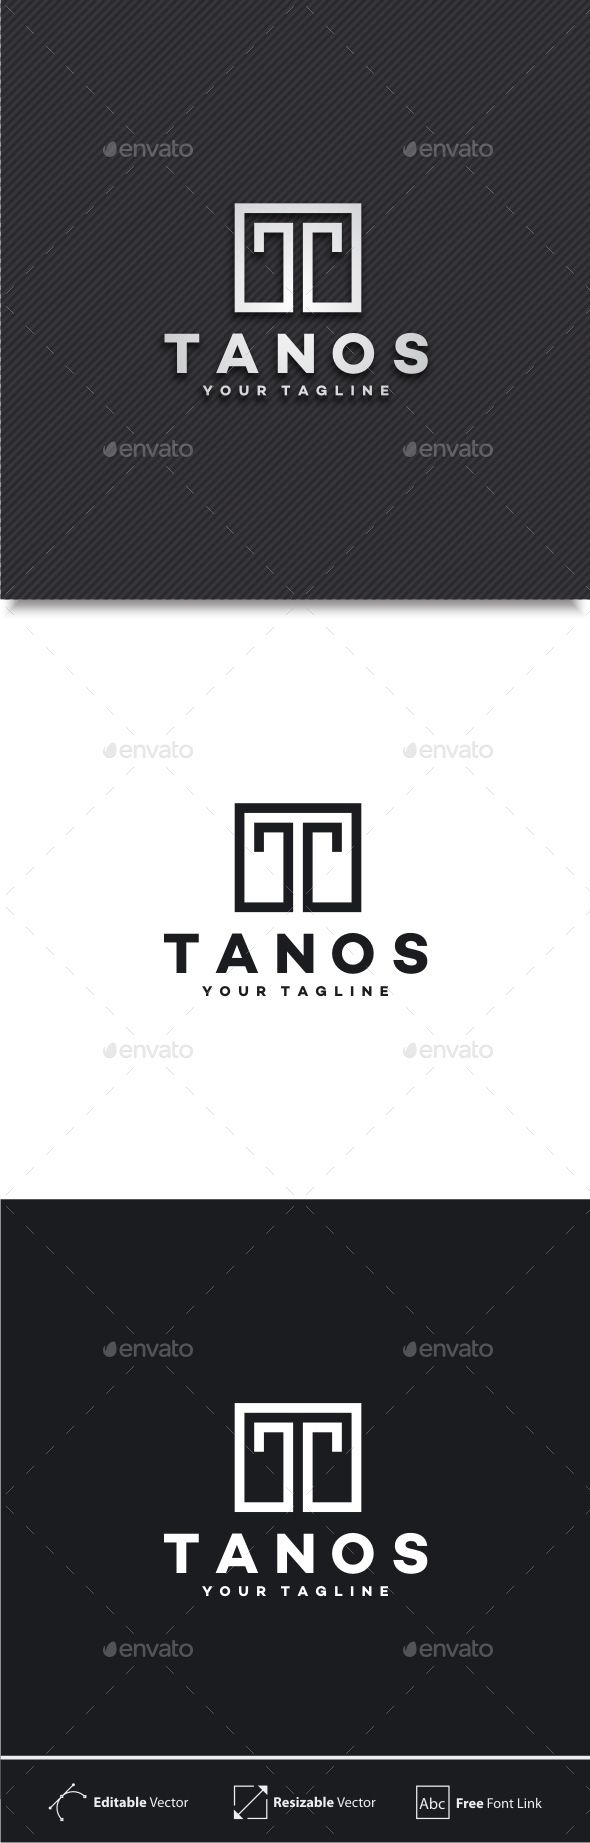 Tanos - Letter T Logo by yopie Logo Template : 100% Vector 100% Customizable High Quality Editable Text Font Name and Link for download are provided in Readme fi